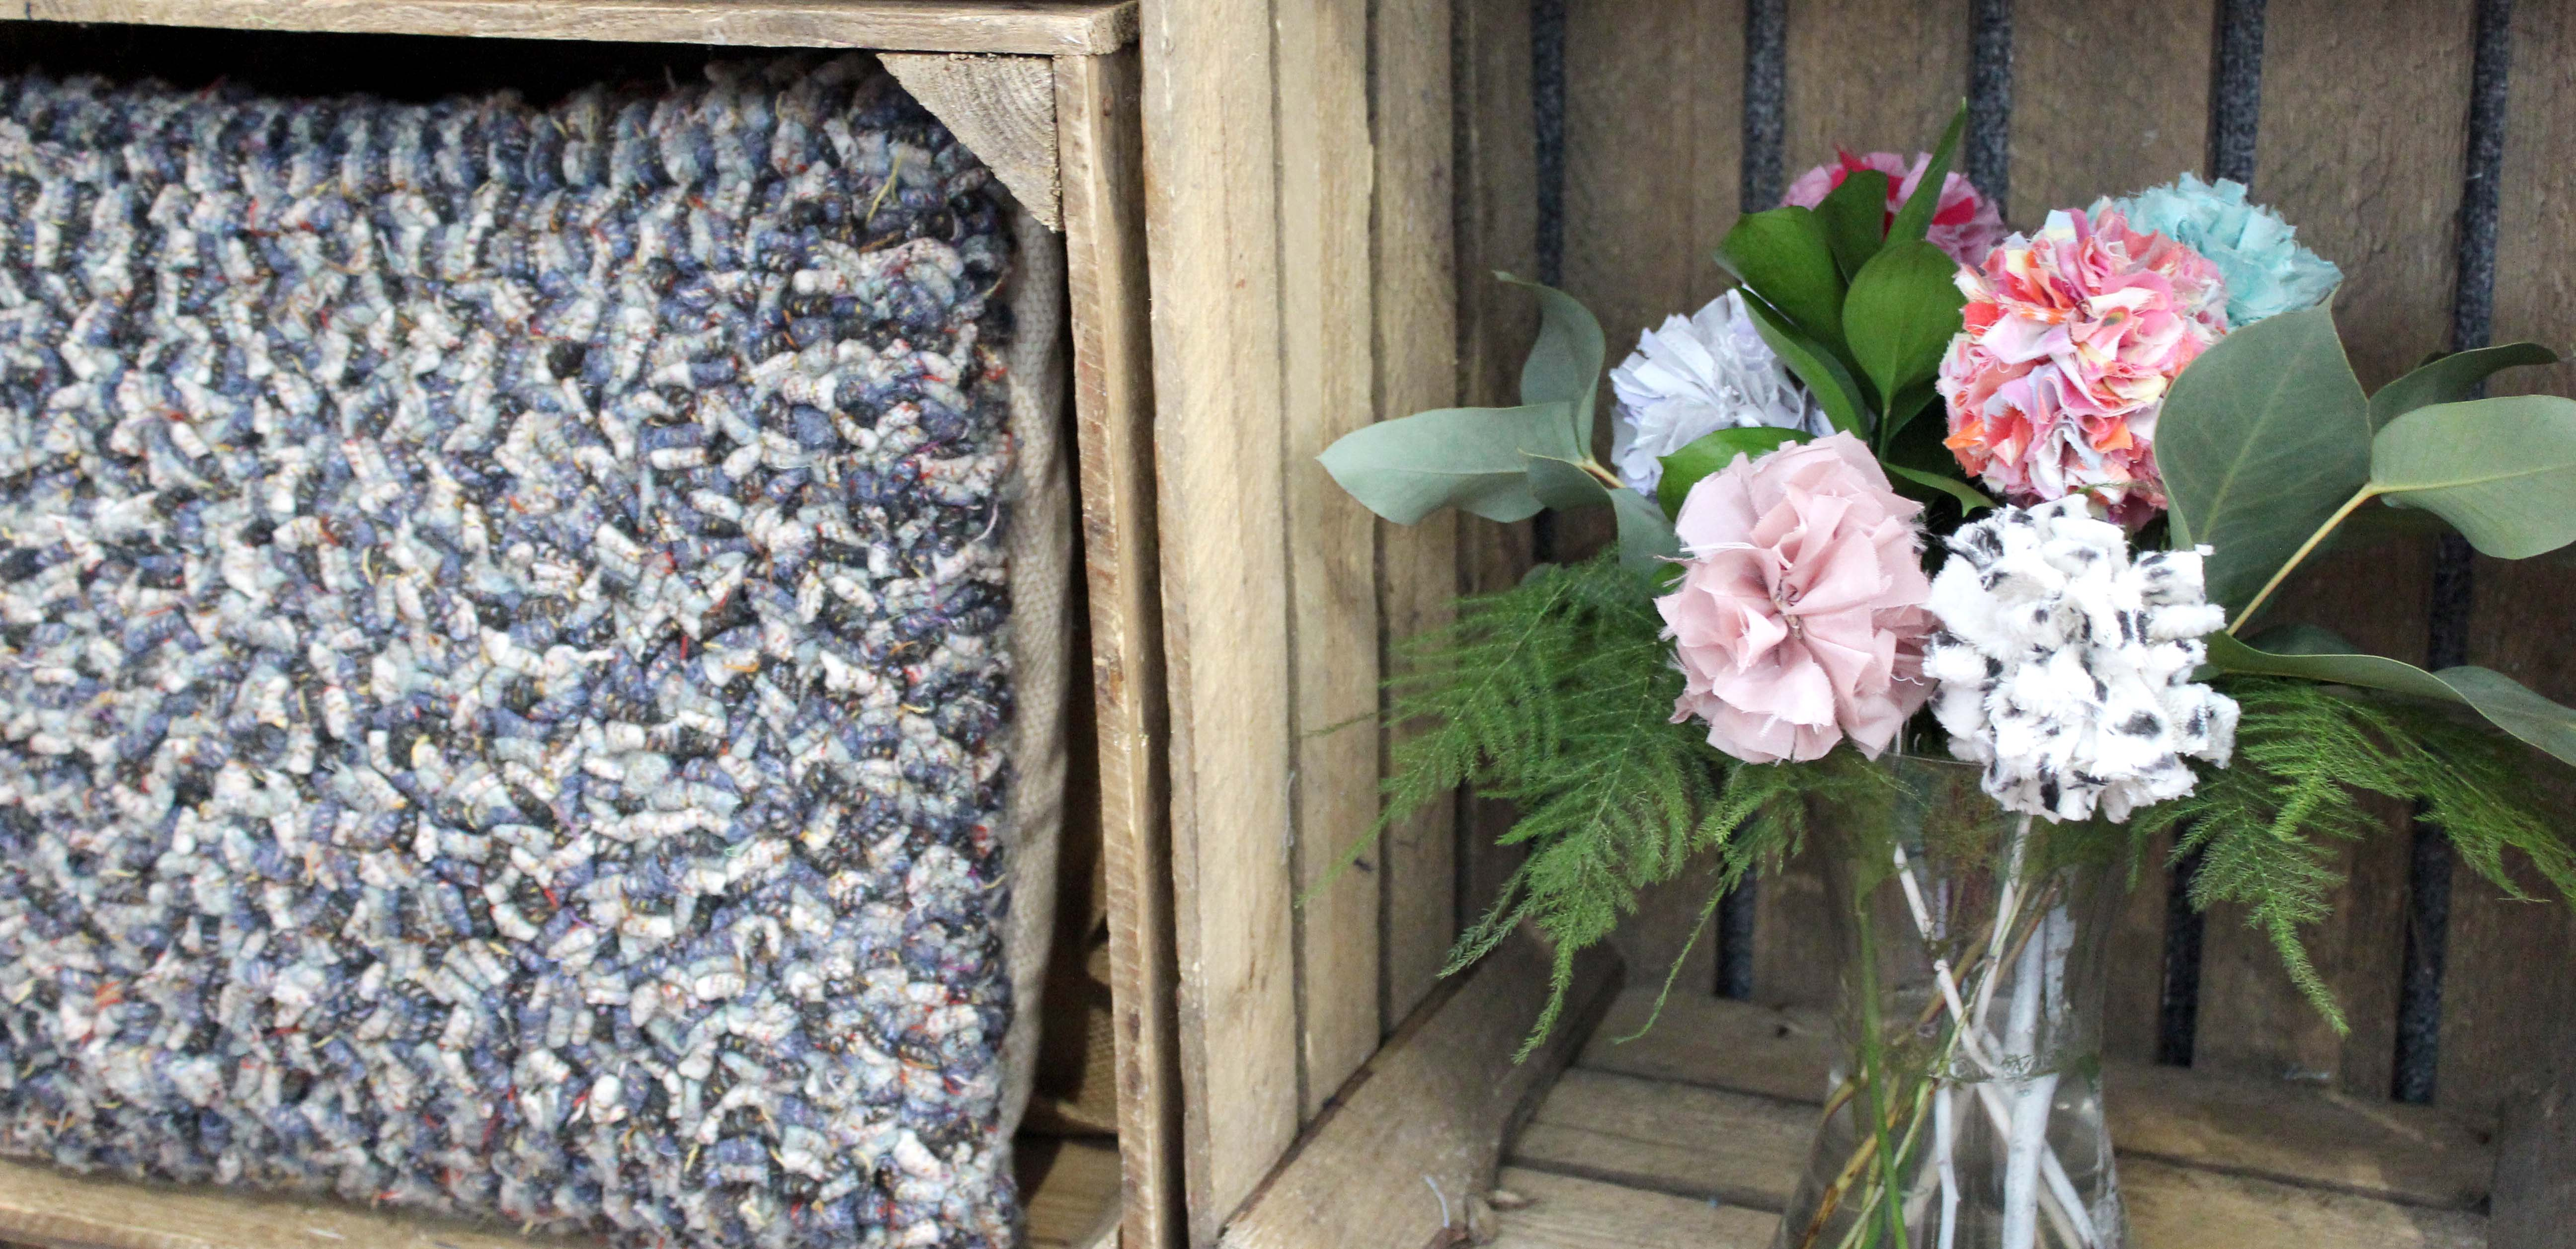 Rag Rug Cushion and Flowers in wooden crates